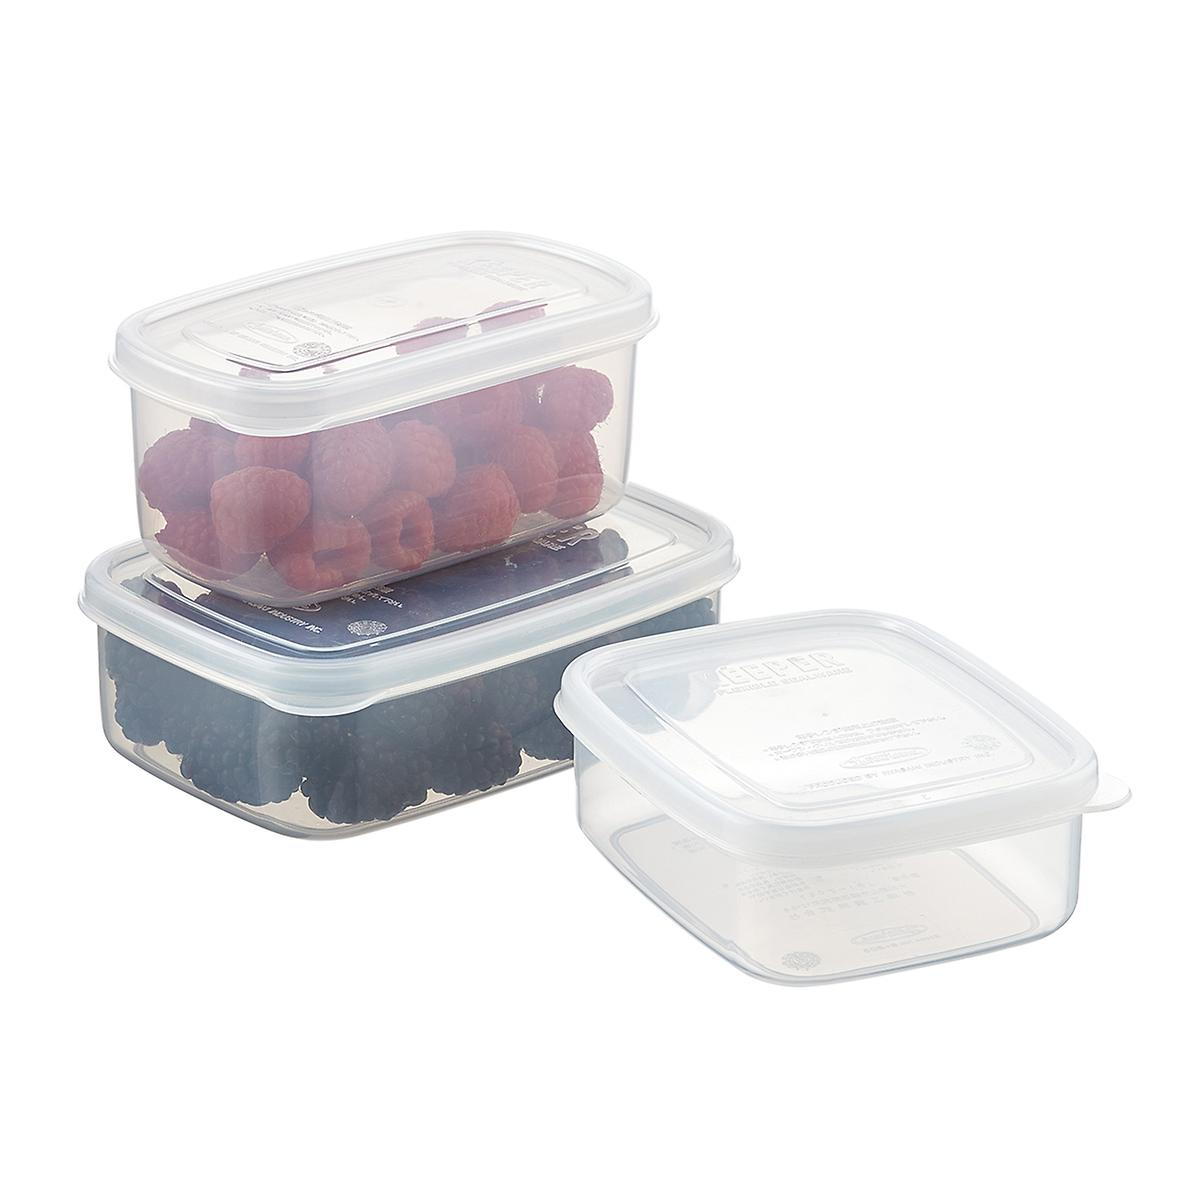 Small Food Keepers The Container Store